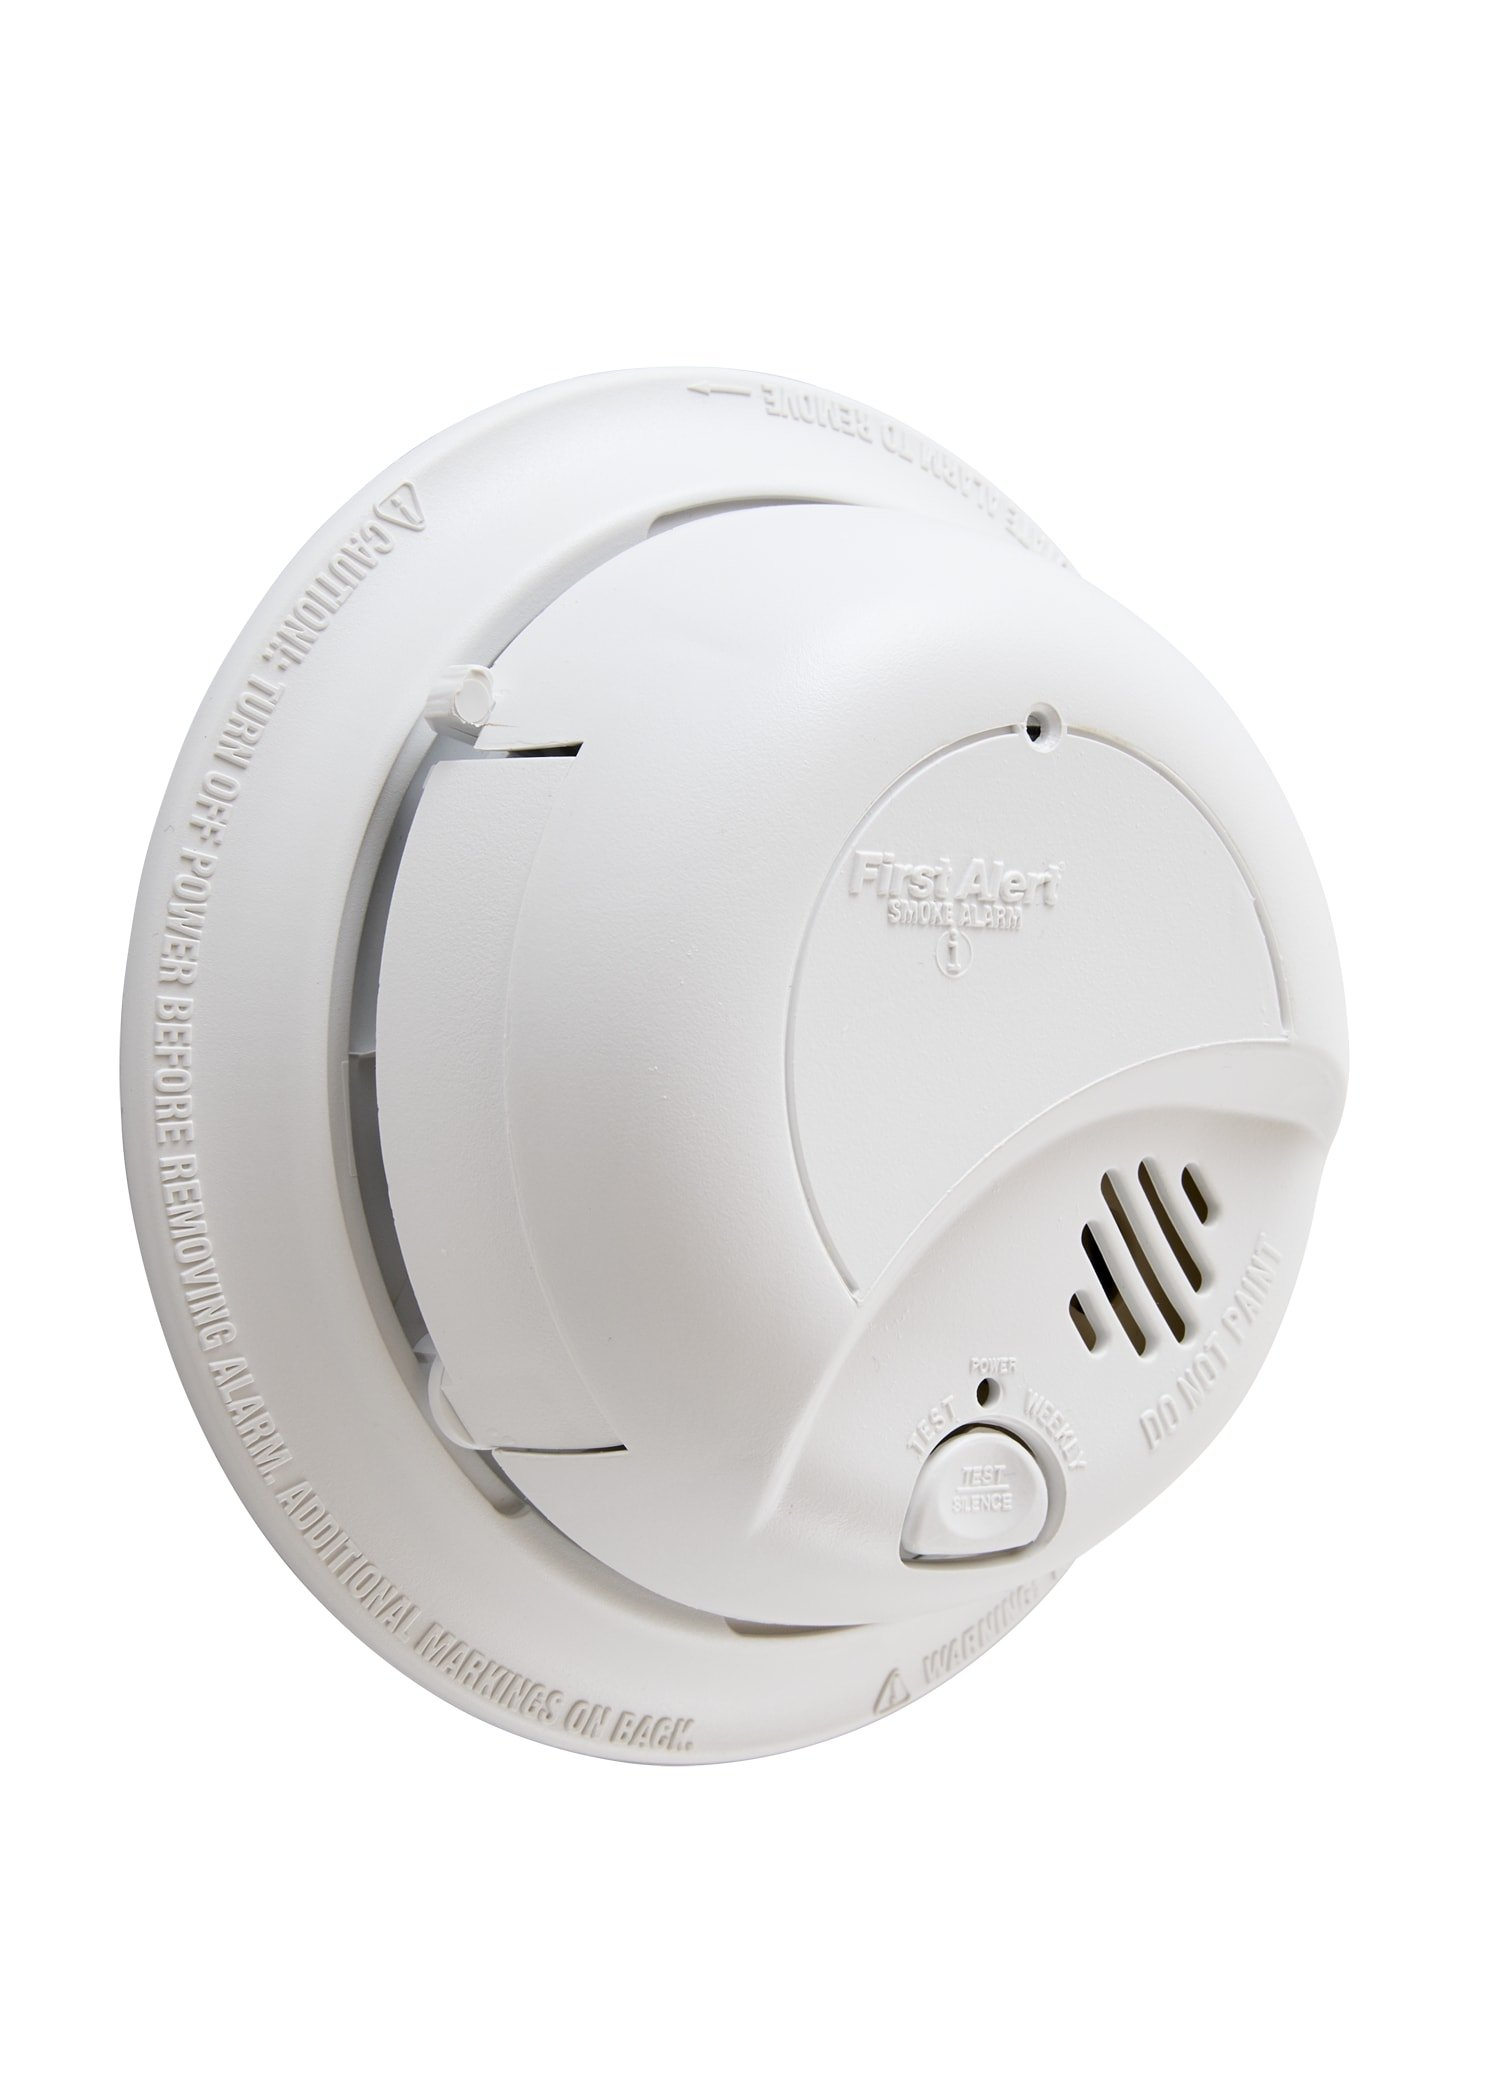 First Alert BRK 9120B Hardwired Smoke Alarm with Battery Backup